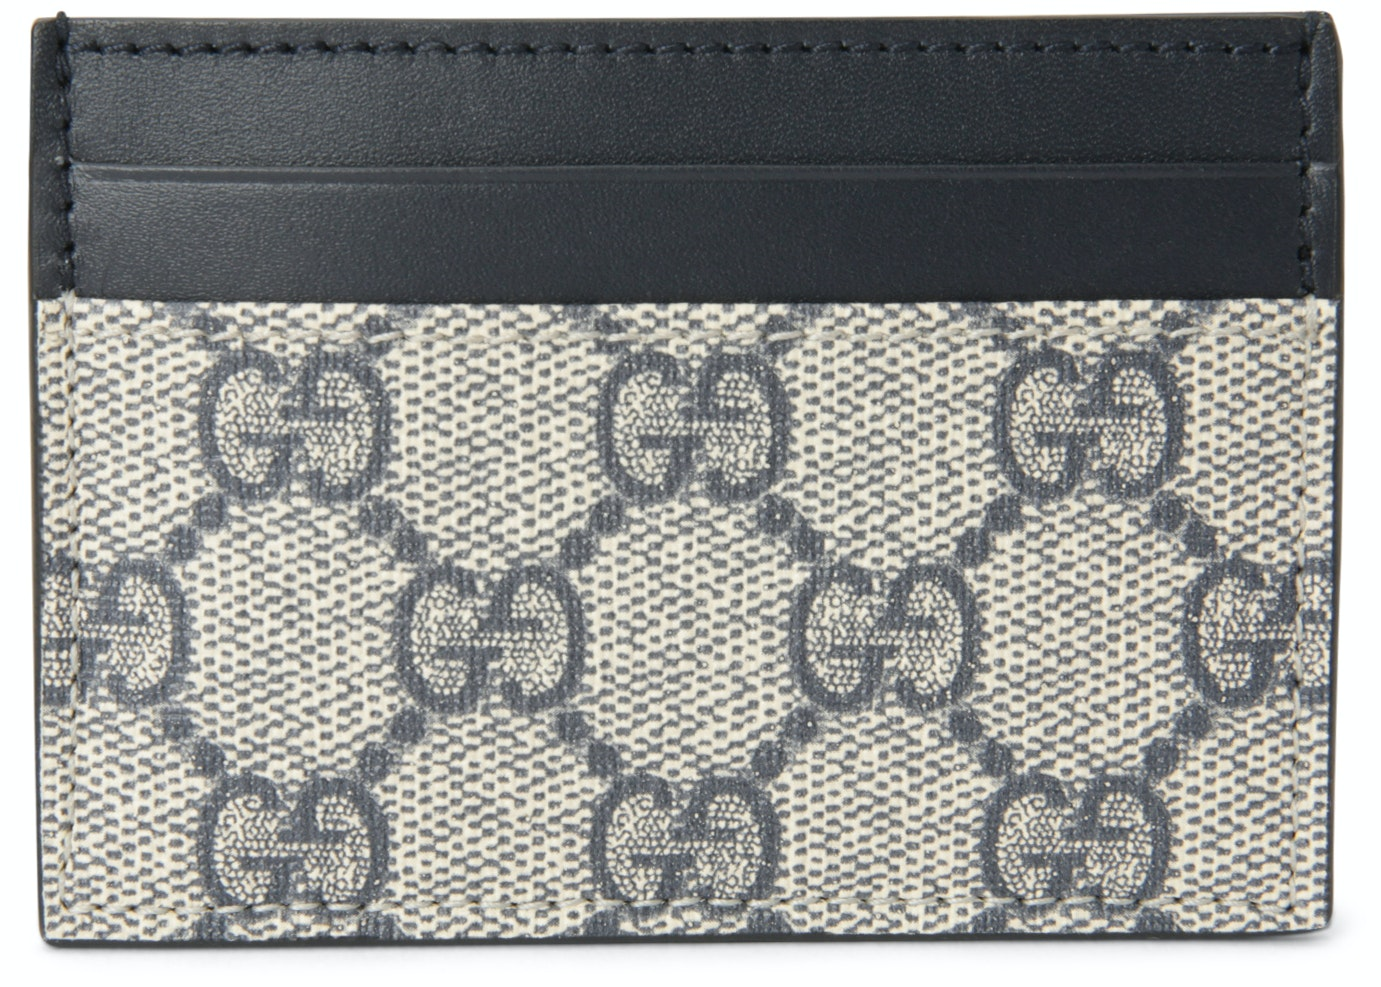 Gucci Money Clip Card Case GG Supreme Beige/Black